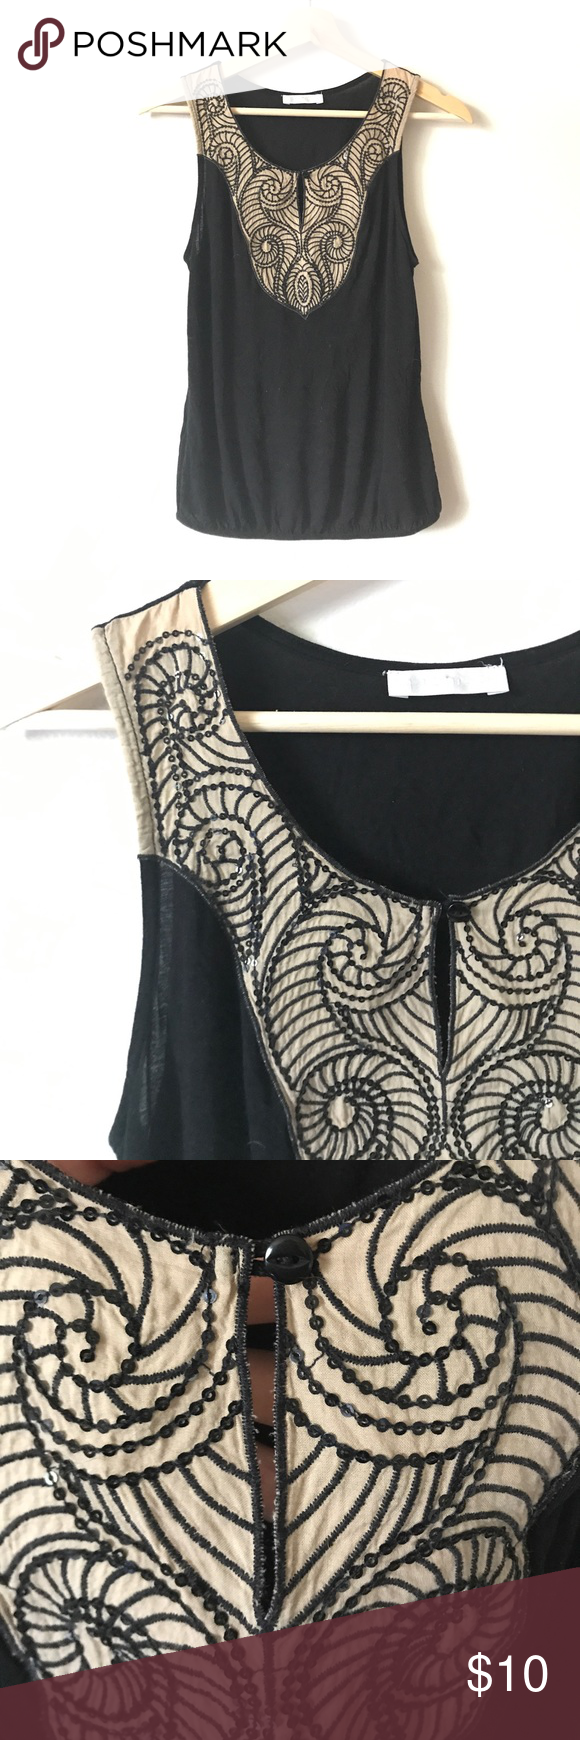 fc413ad4a61de Promod Black Tank w  embroidered bib Black tank top blouse from Promod.  Elastic around